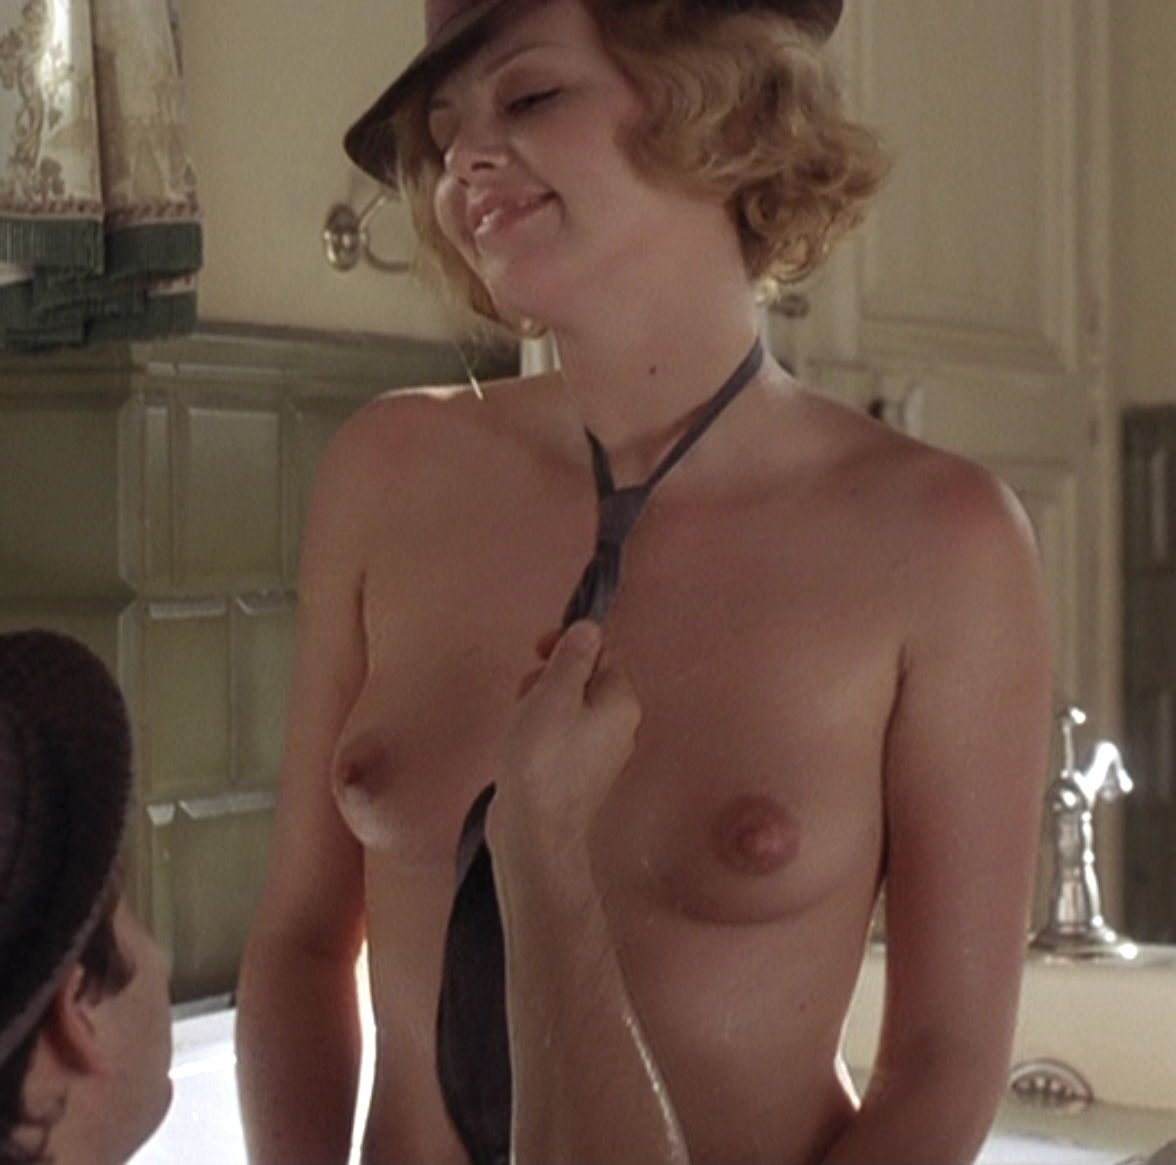 tight-charlize-theron-complete-nude-penetration-gif